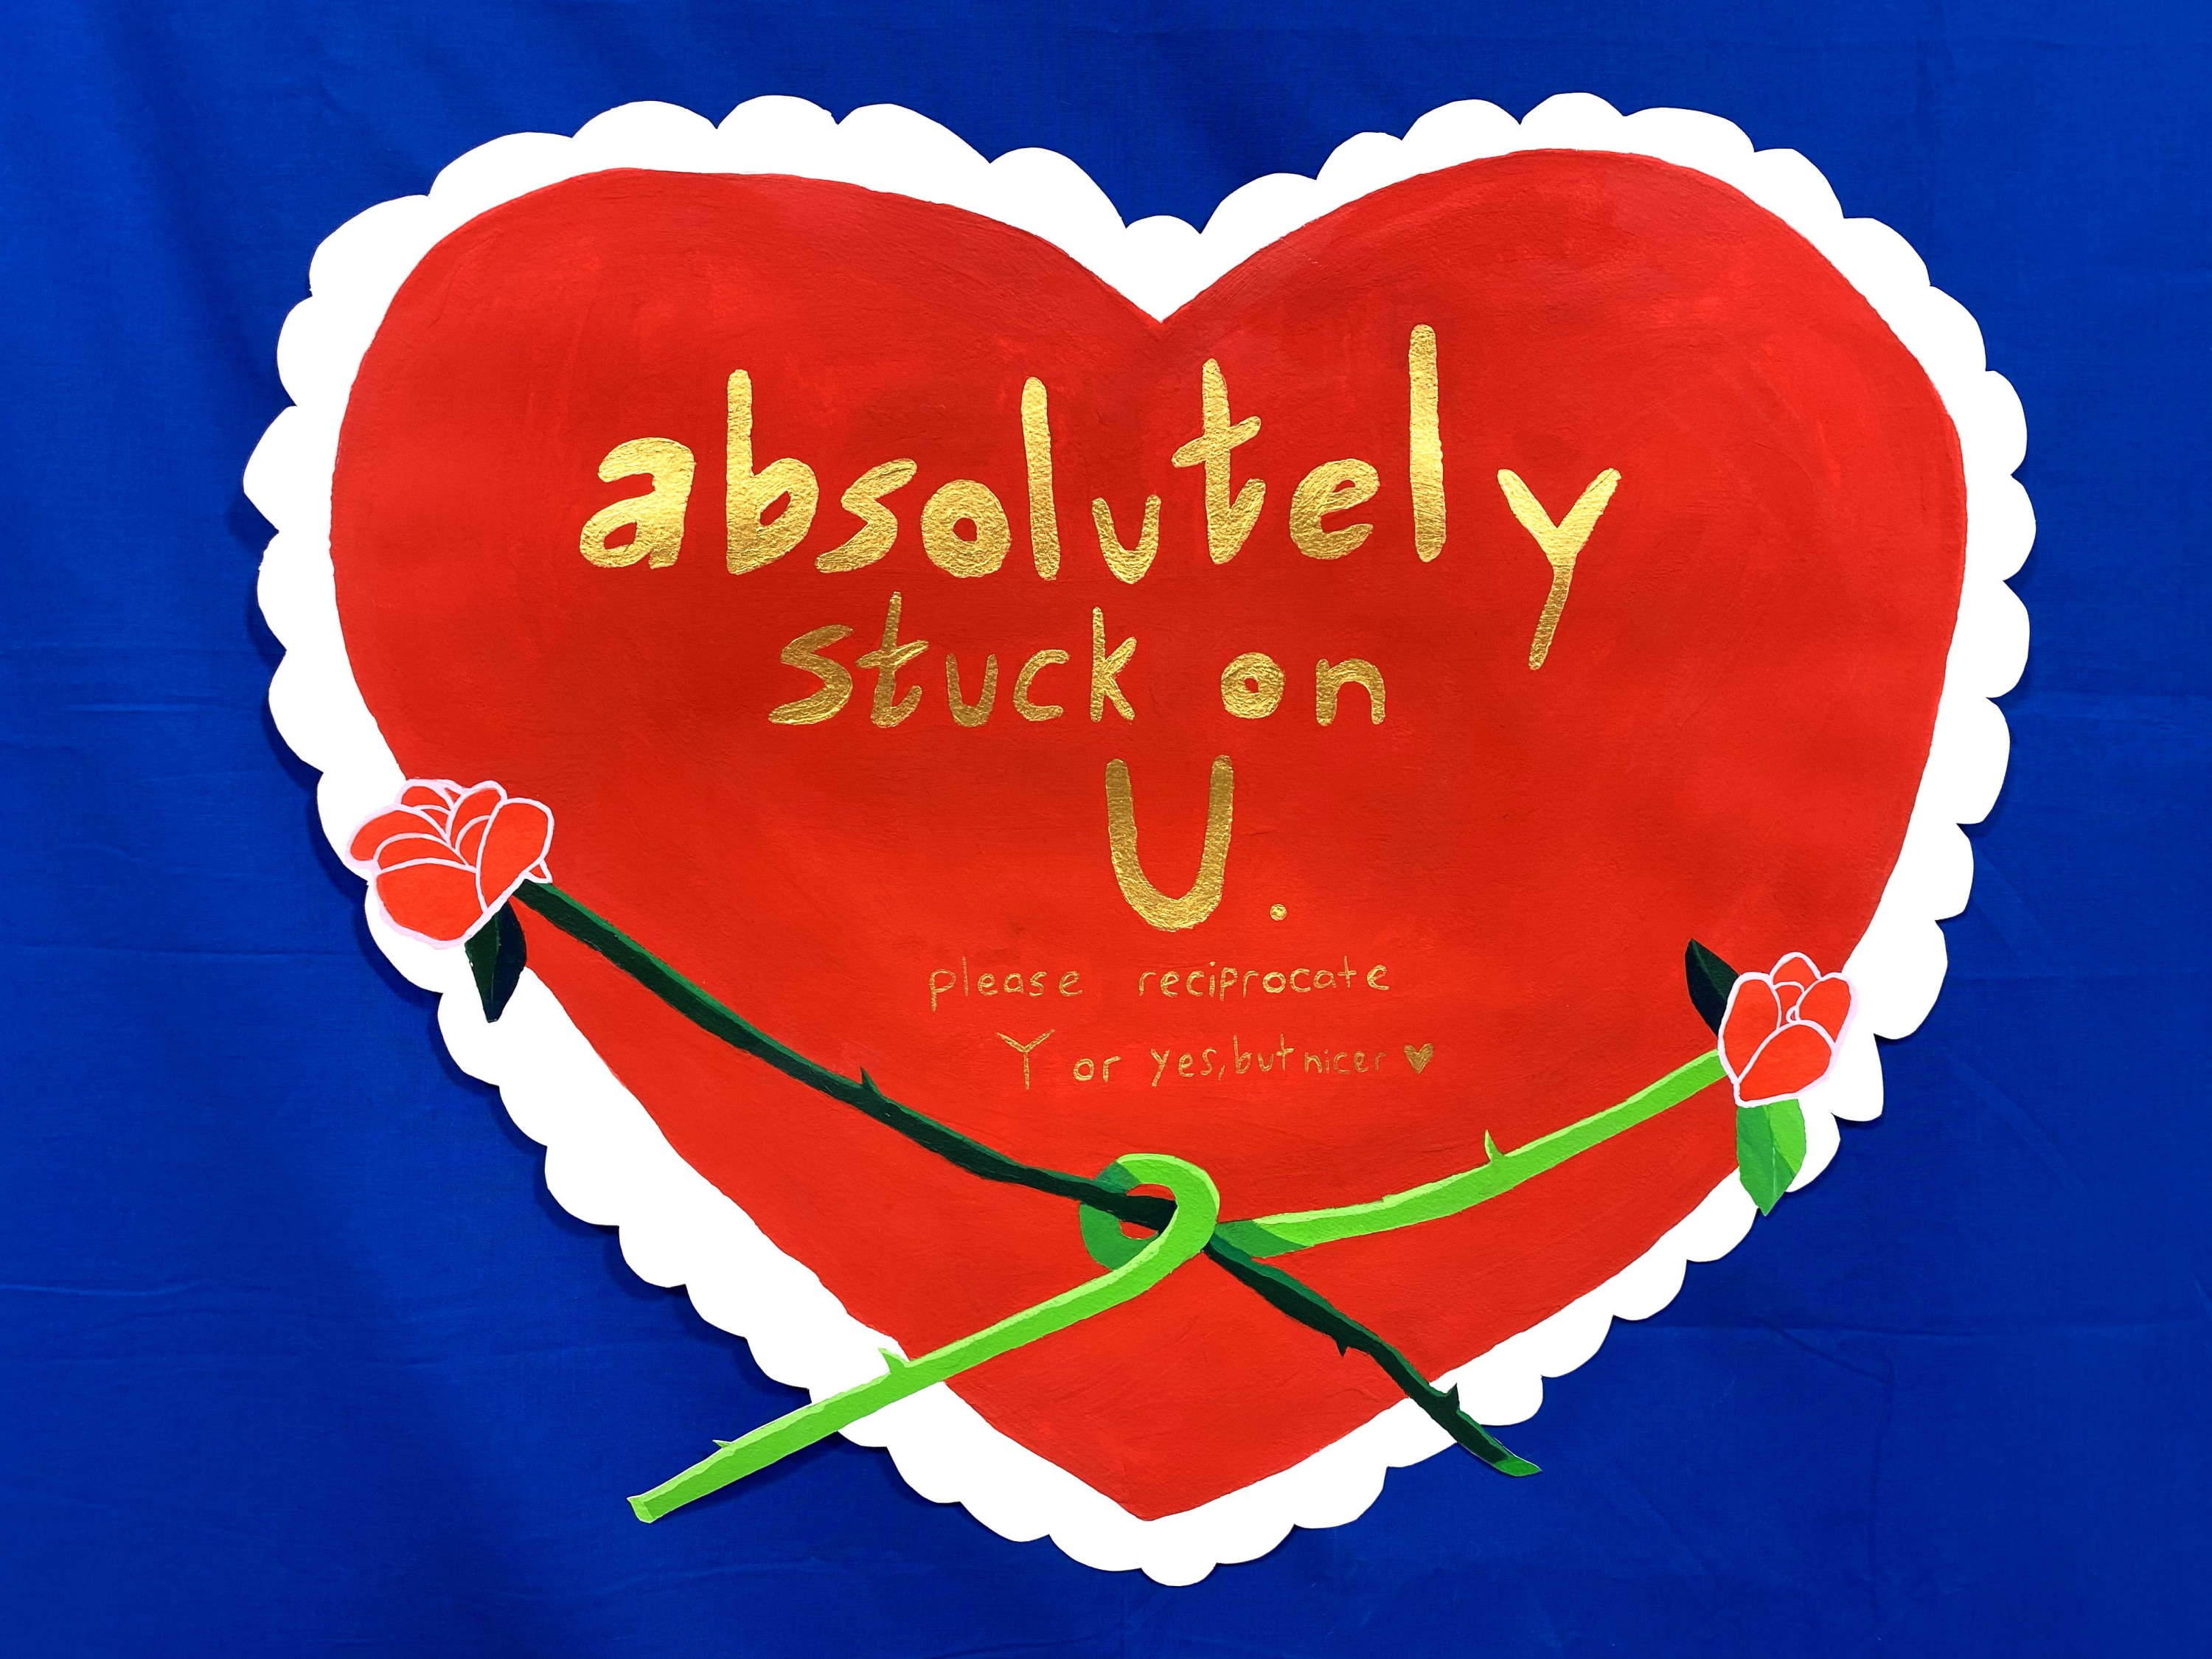 """This painting is in the shape of a large Valentine's heart. It's a vibrant red with a white scalloped trim. In the center are the words, """"absolutely stuck on U"""" in large metallic gold letters. In the same gold paint underneath the big words are smaller wo"""